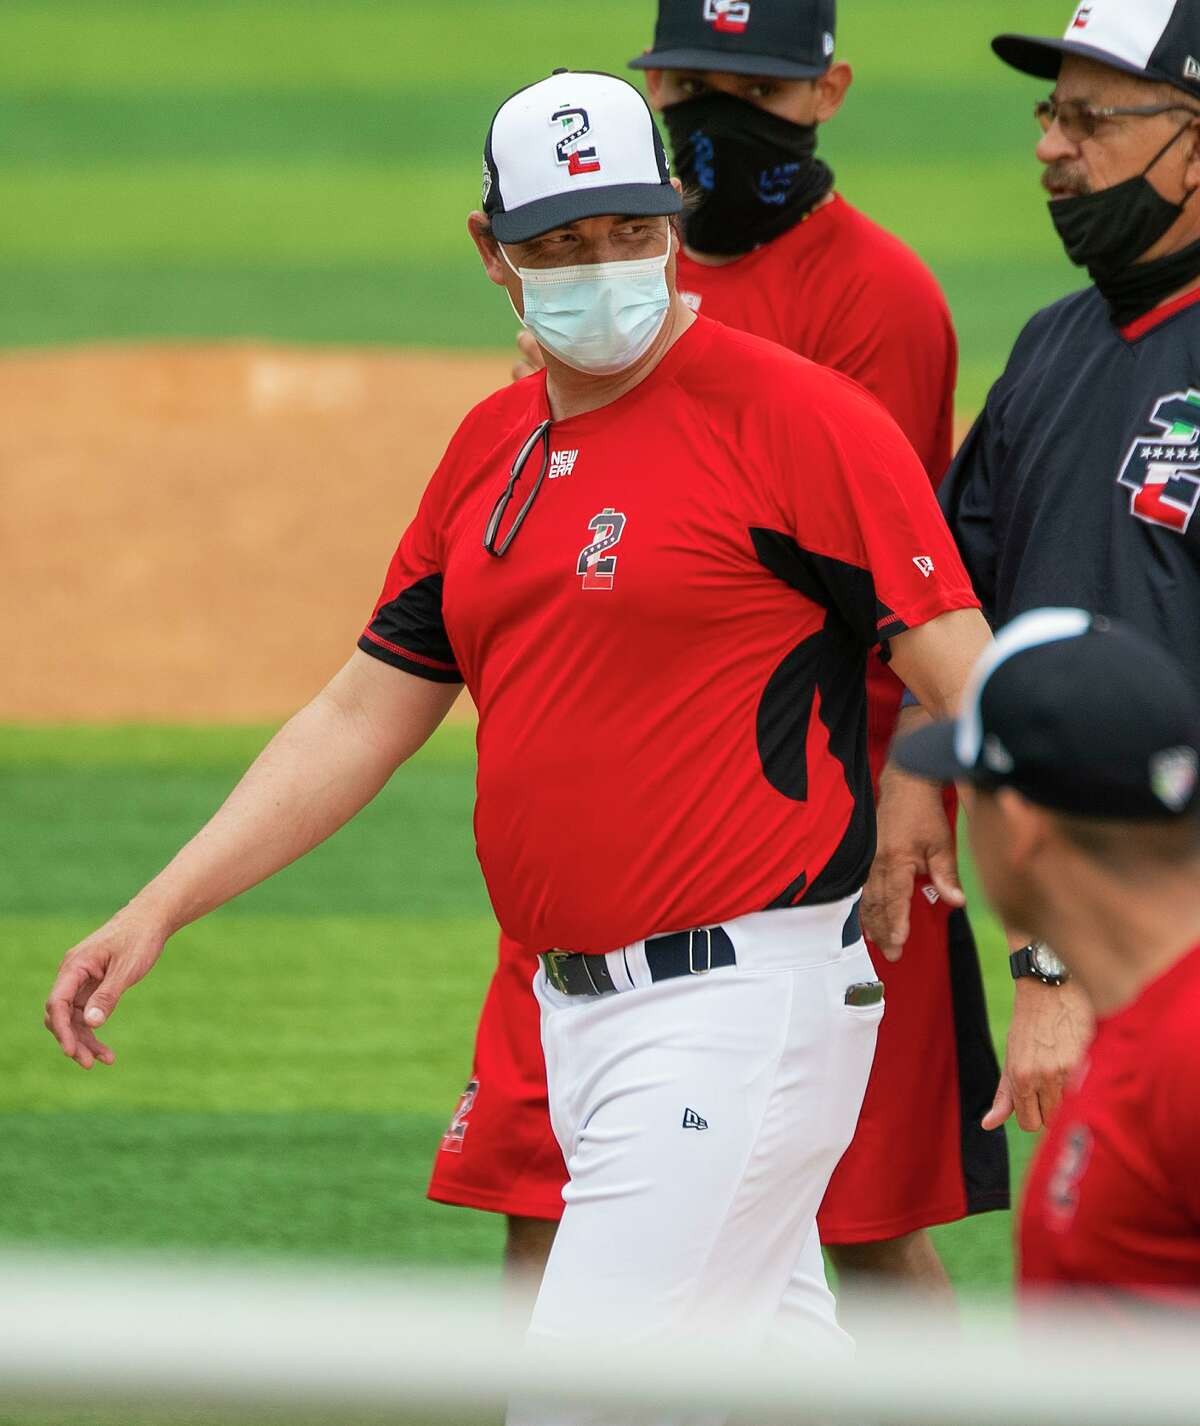 The Tecolotes Dos Laredos relieved manager Pablo Ortega of his duties early Thursday after the team's loss to Durango on Wednesday night.